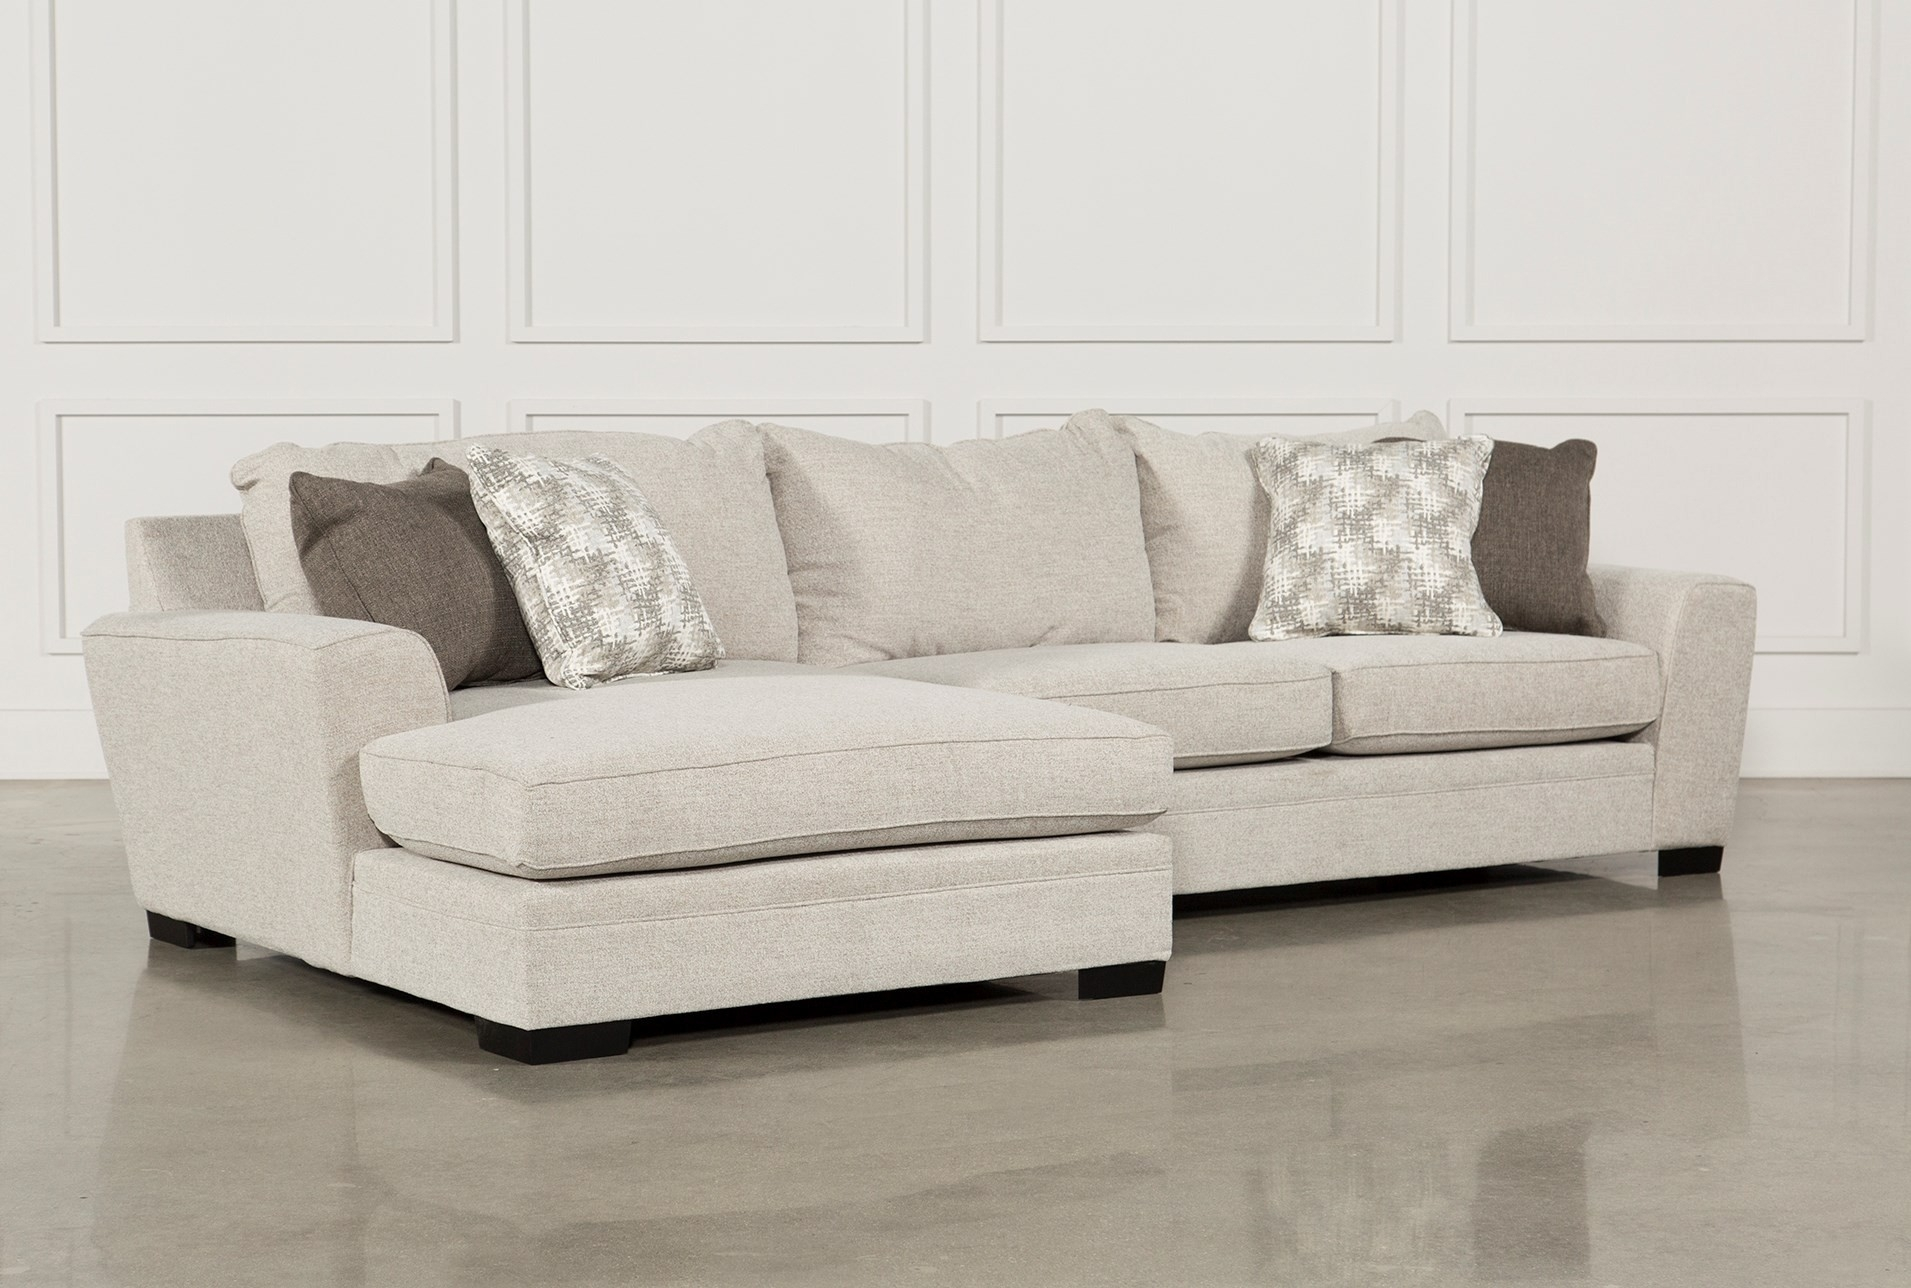 Living Spaces Sectional Sofas – Implantologiabogota (View 9 of 25)